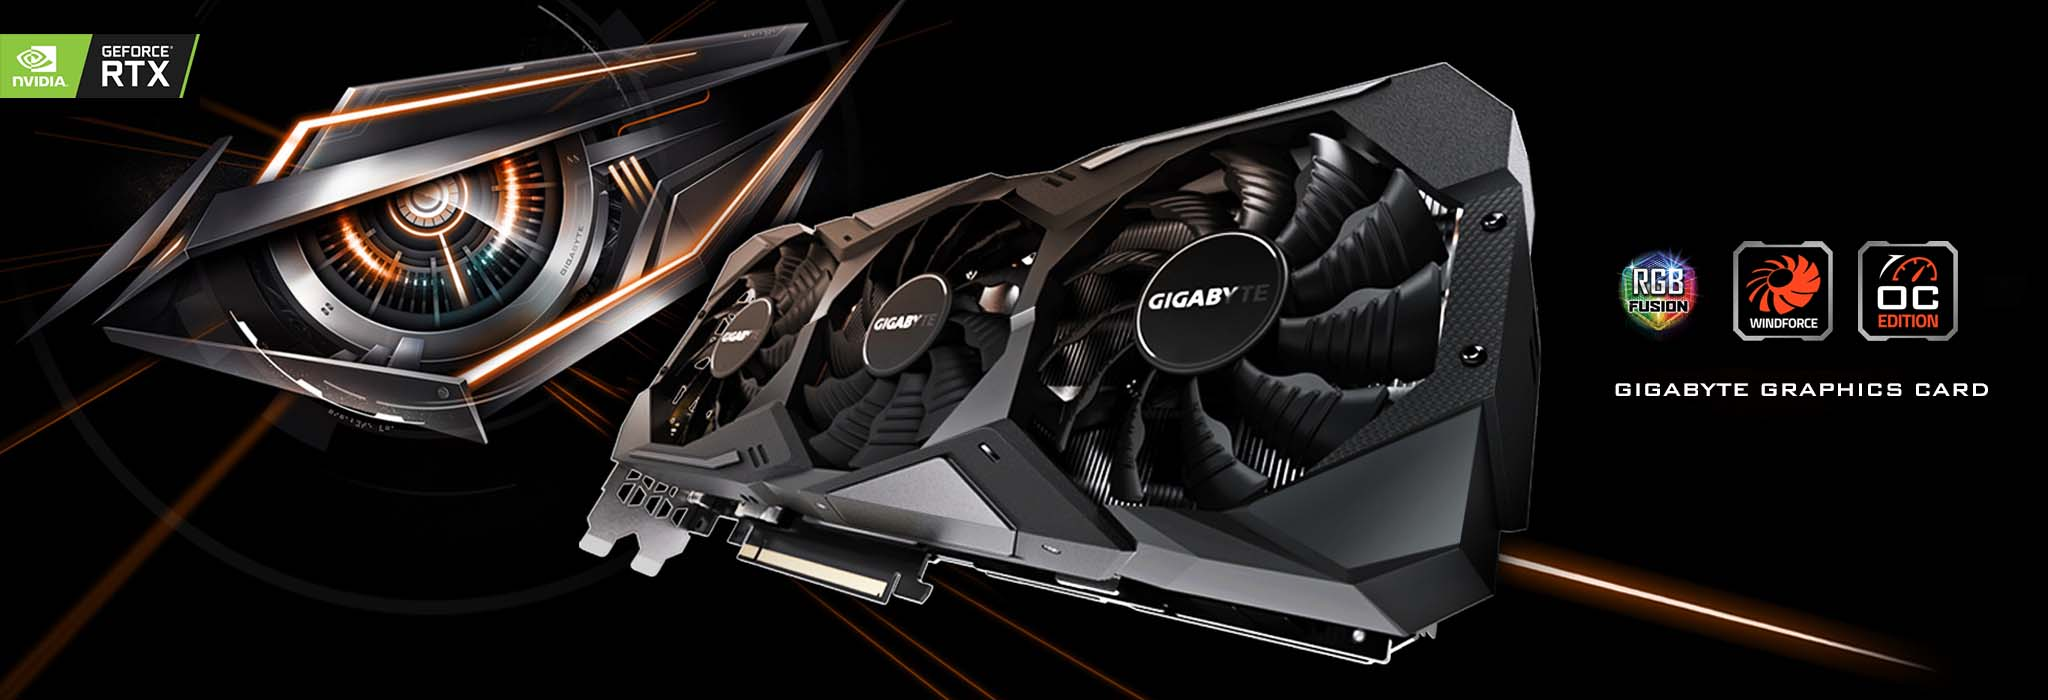 gigabyte_geforce_rtx_20_series.jpg